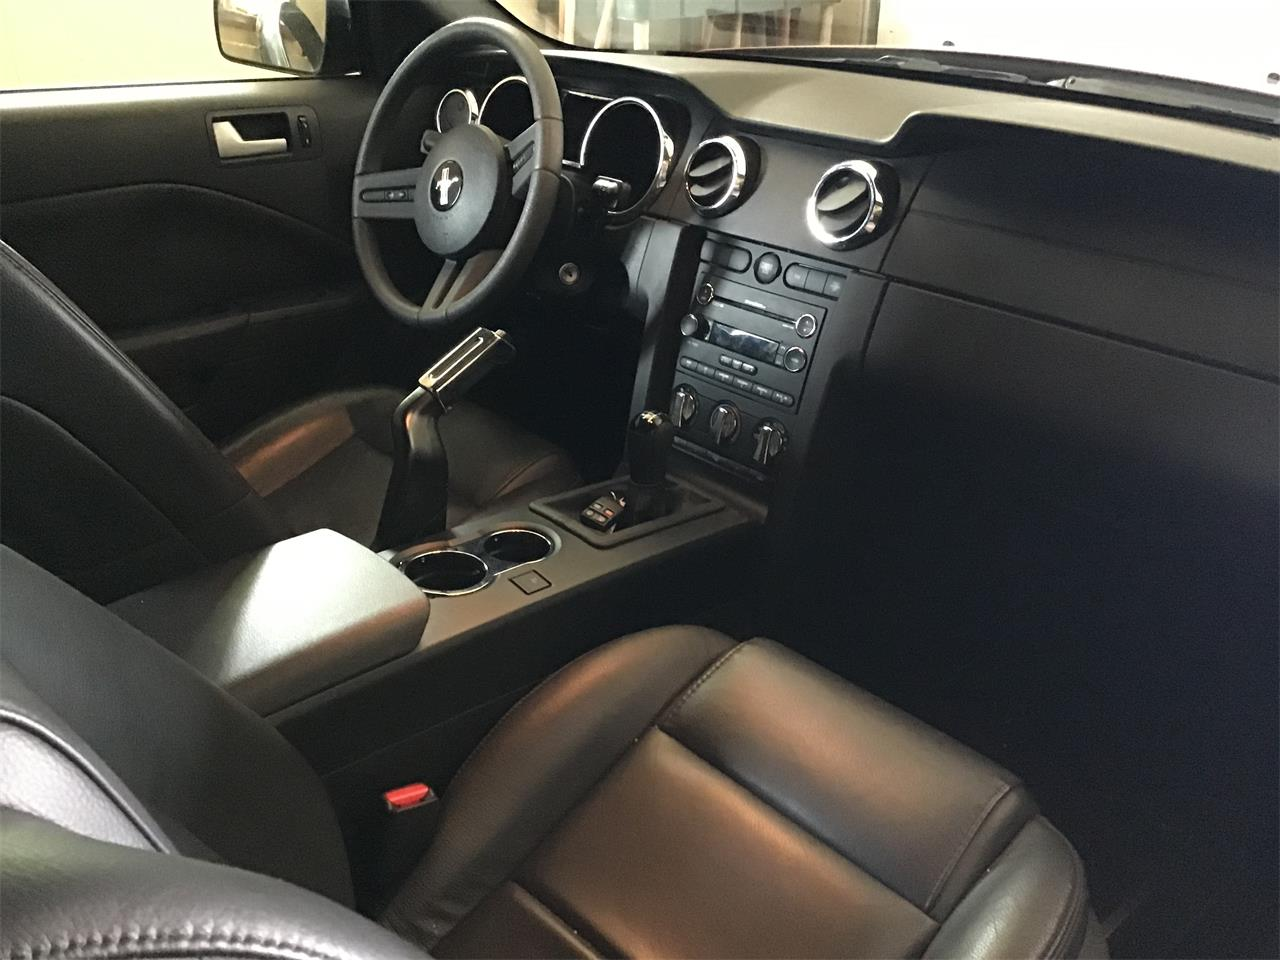 2008 Ford Mustang (CC-1355774) for sale in Nevada, Missouri